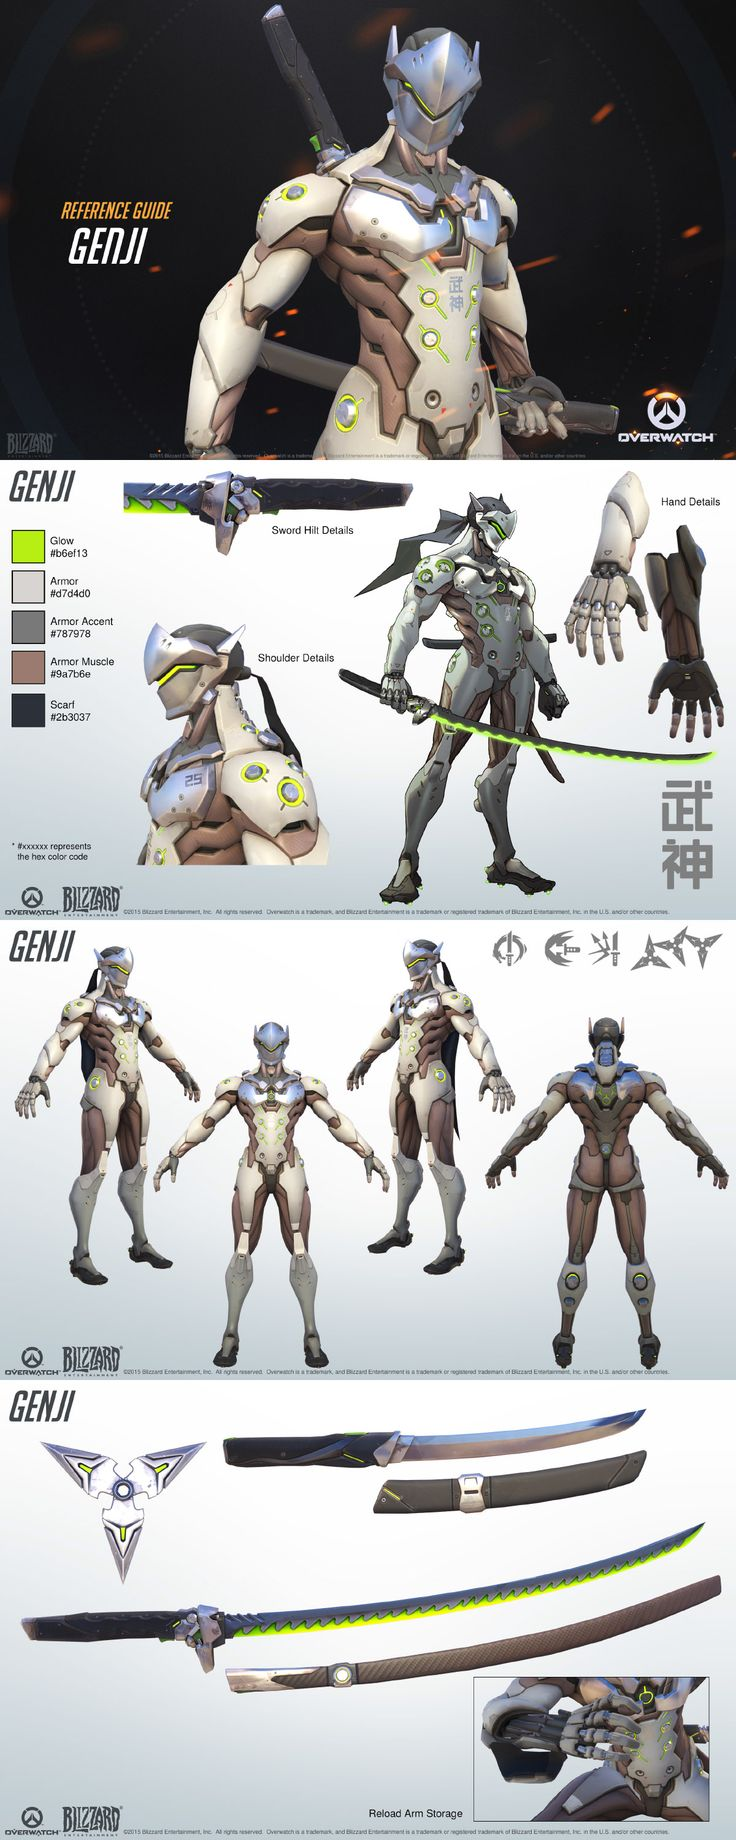 136 best images about overwatch on Pinterest | Chibi, Spotlight ...